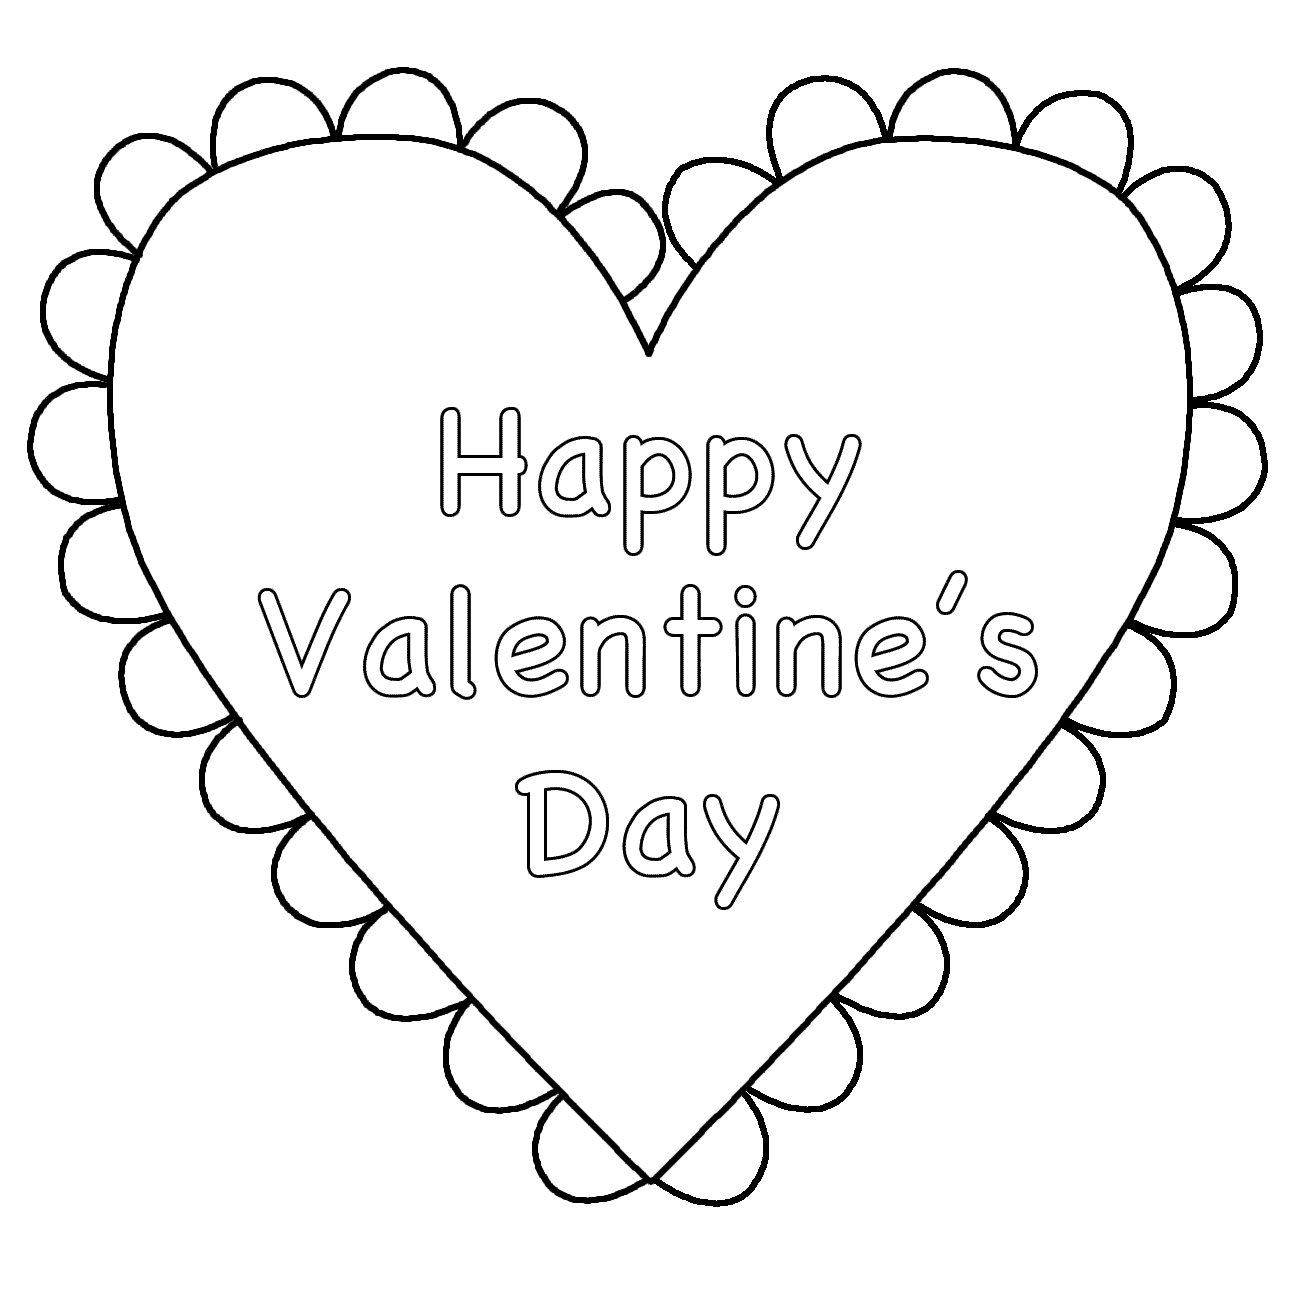 happy valentines day coloring pages printable에 대한 이미지 ...